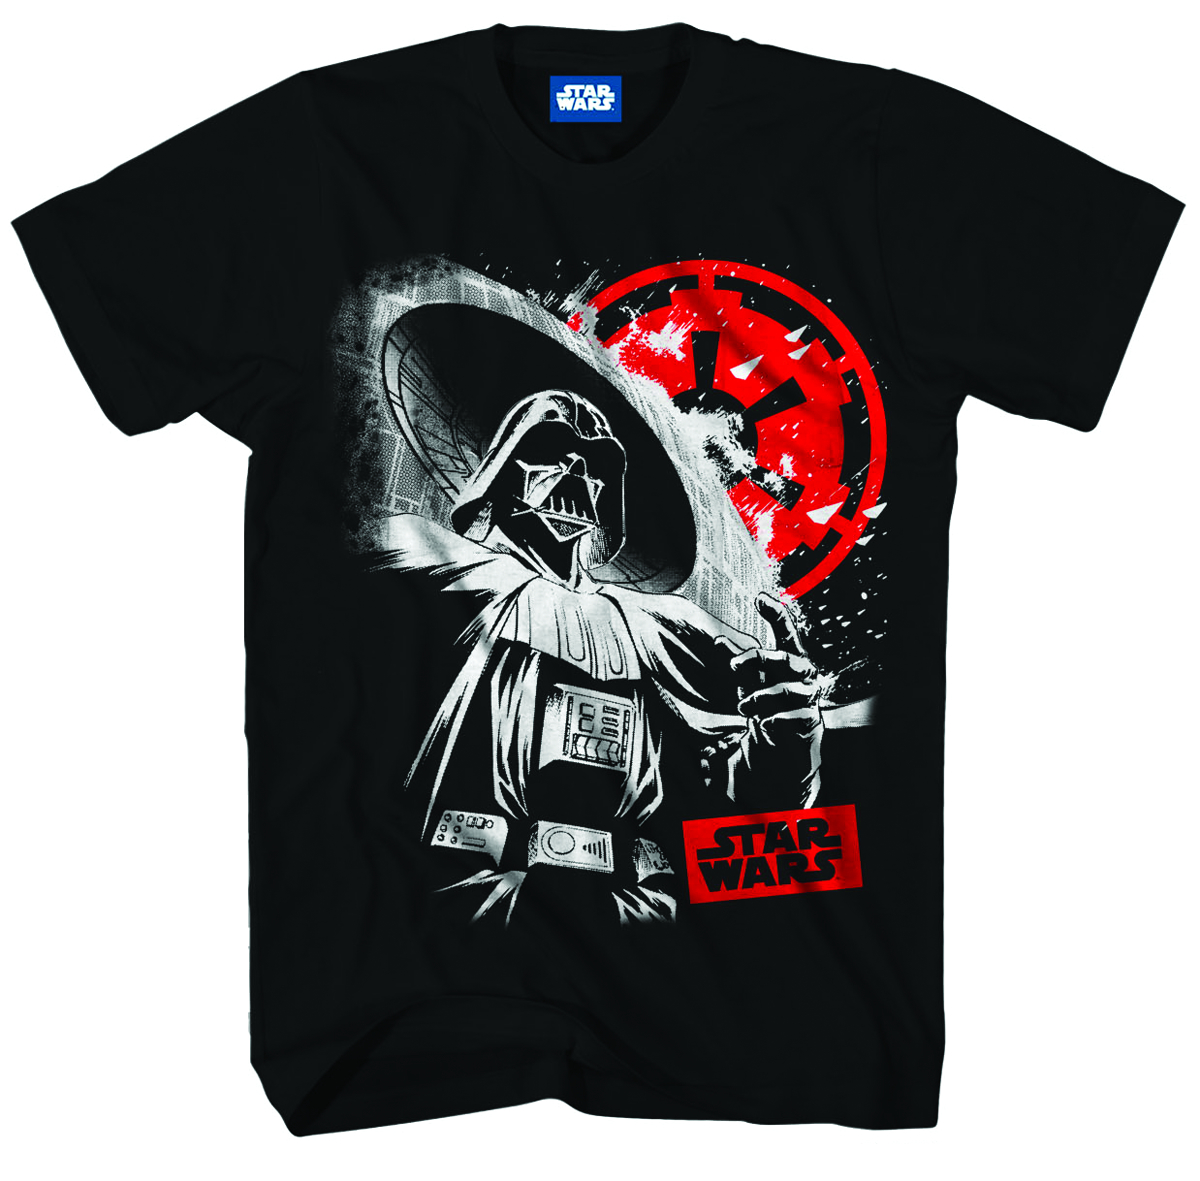 STAR WARS IM NOT SORRY PX BLK T/S LG